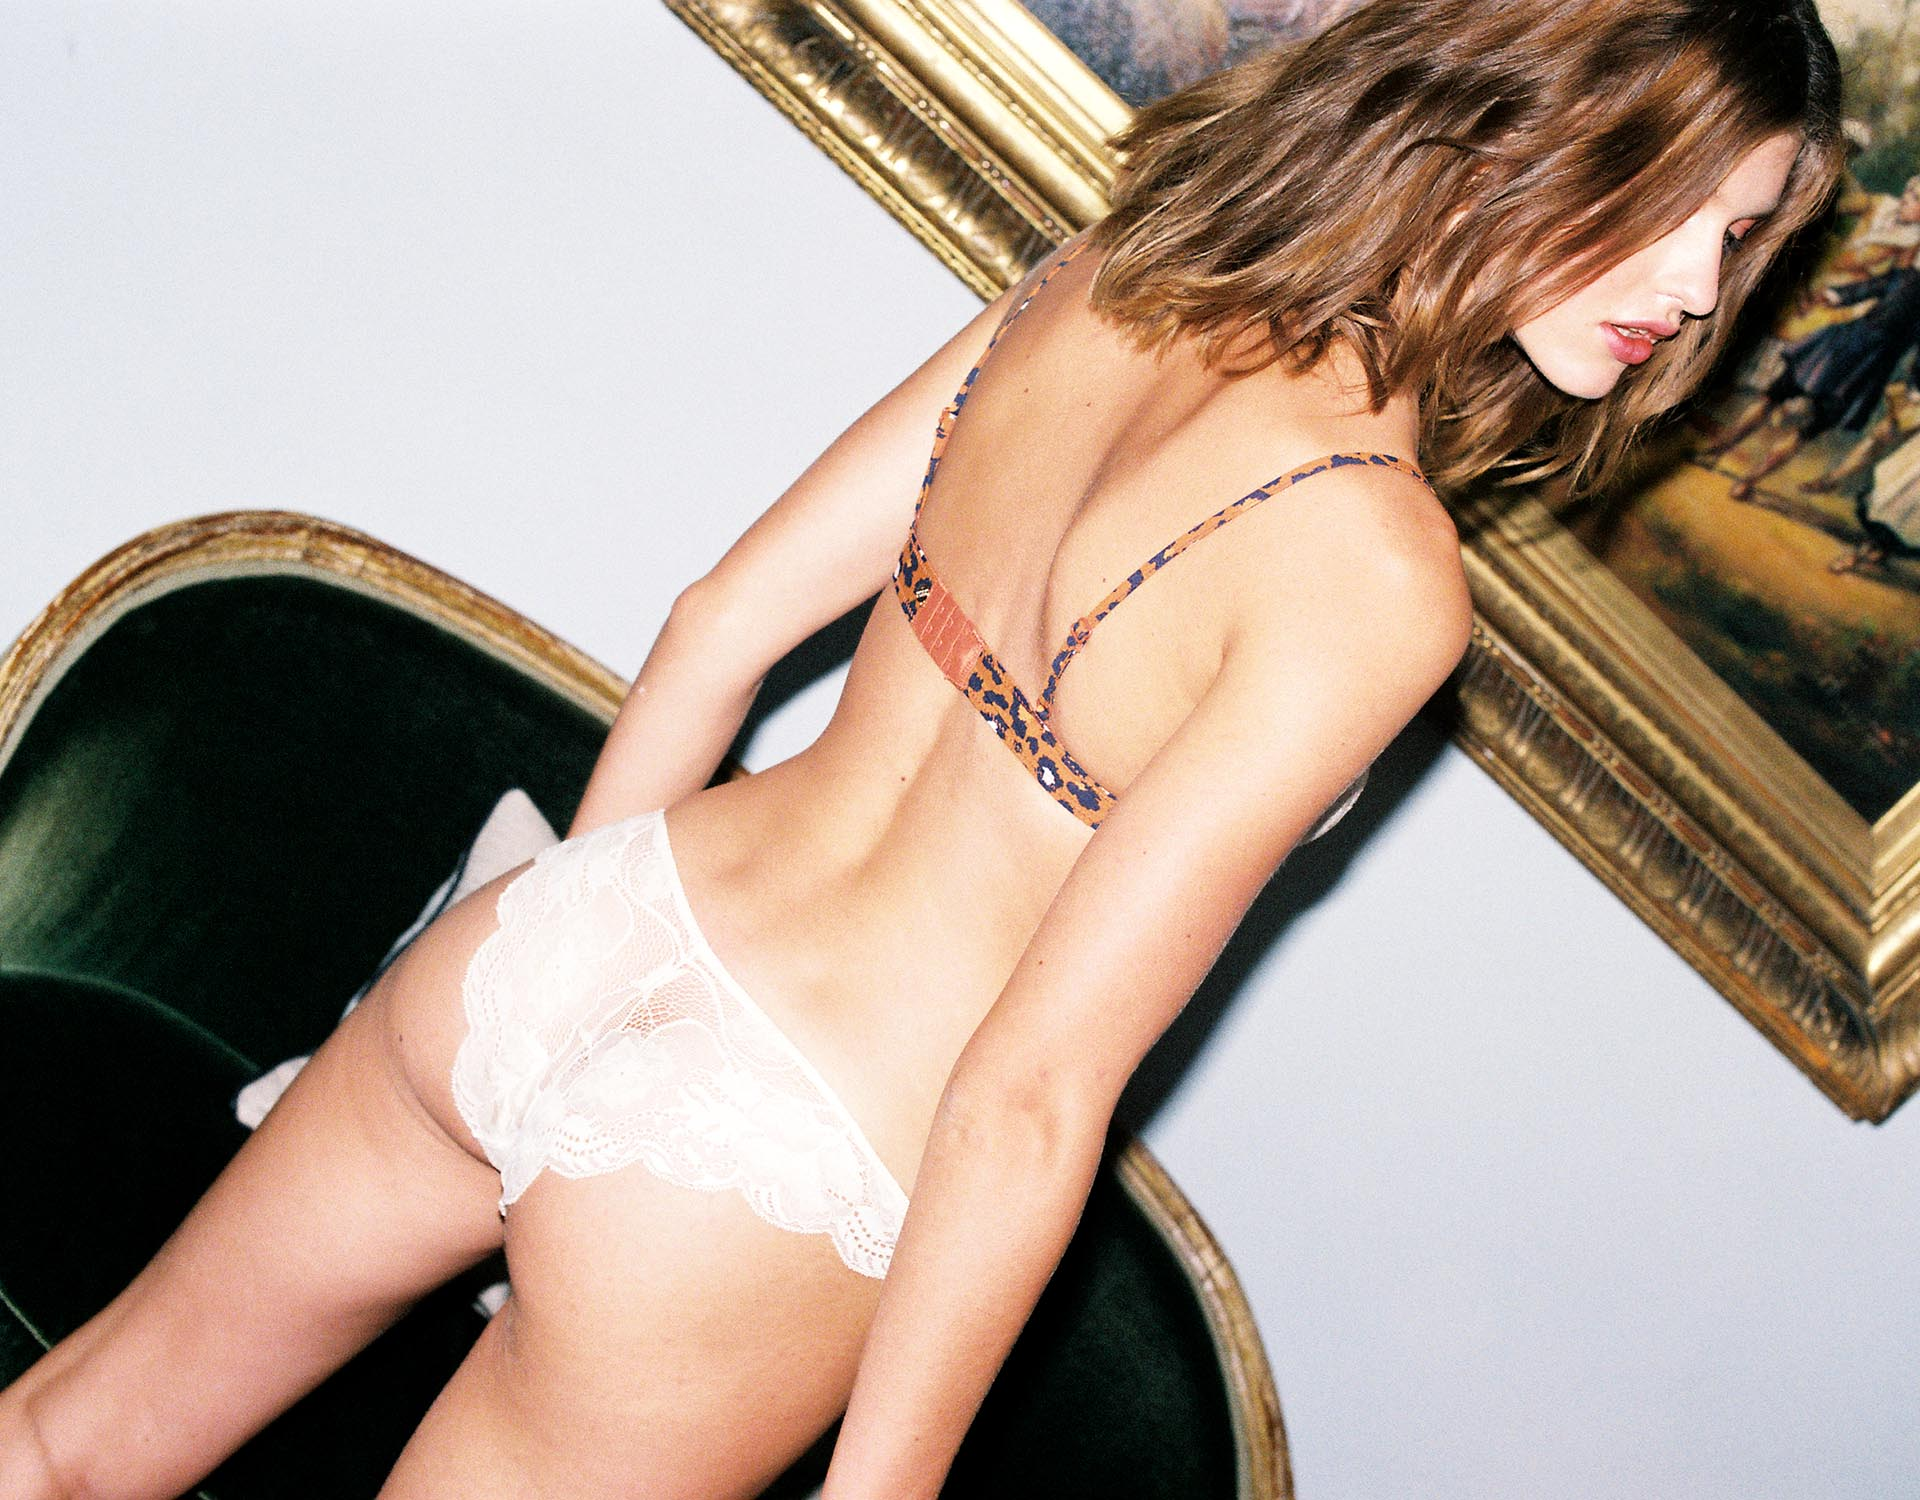 lingerie bra without underwires Spice Mush 32 € Girls In Paris photo 6